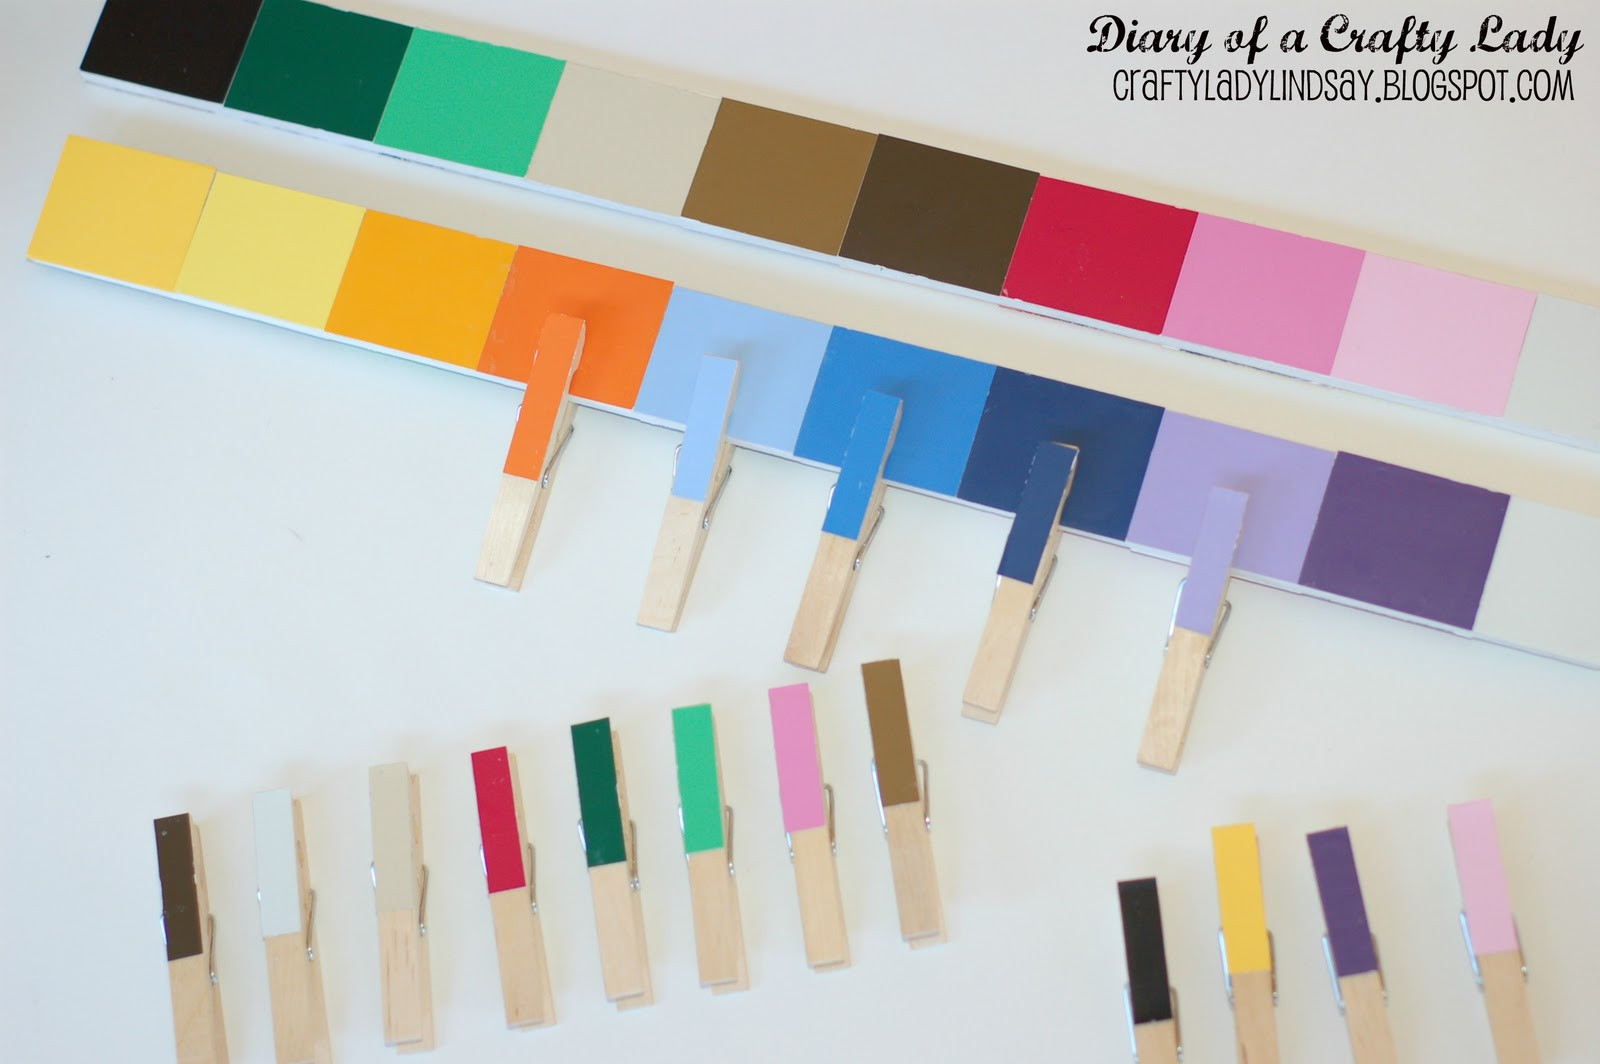 Best ideas about Matching Paint Colors . Save or Pin Diary of a Crafty Lady Paint Stick Paint Chip Color Now.